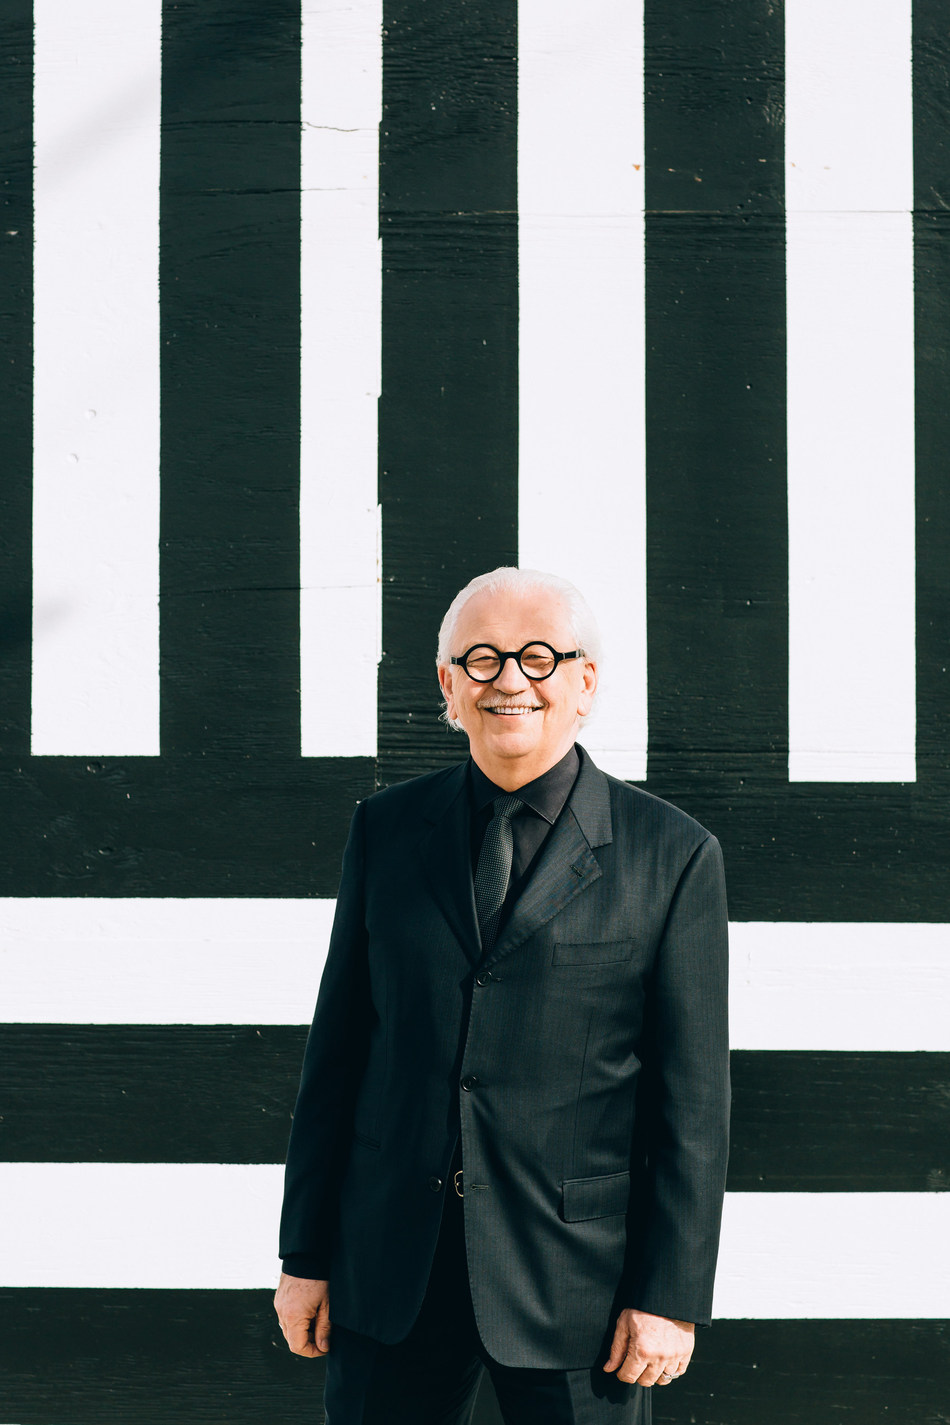 "NewSchool of Architecture & Design President, Marvin J. Malecha, will be the keynote speaker at the Friends of San Diego Architecture Saturday Morning Speaker Series on February 18. President Malecha's lecture, ""Educating Architects in Sustainability,"" will focus on educating citizen architects and designers in using sustainable practices."